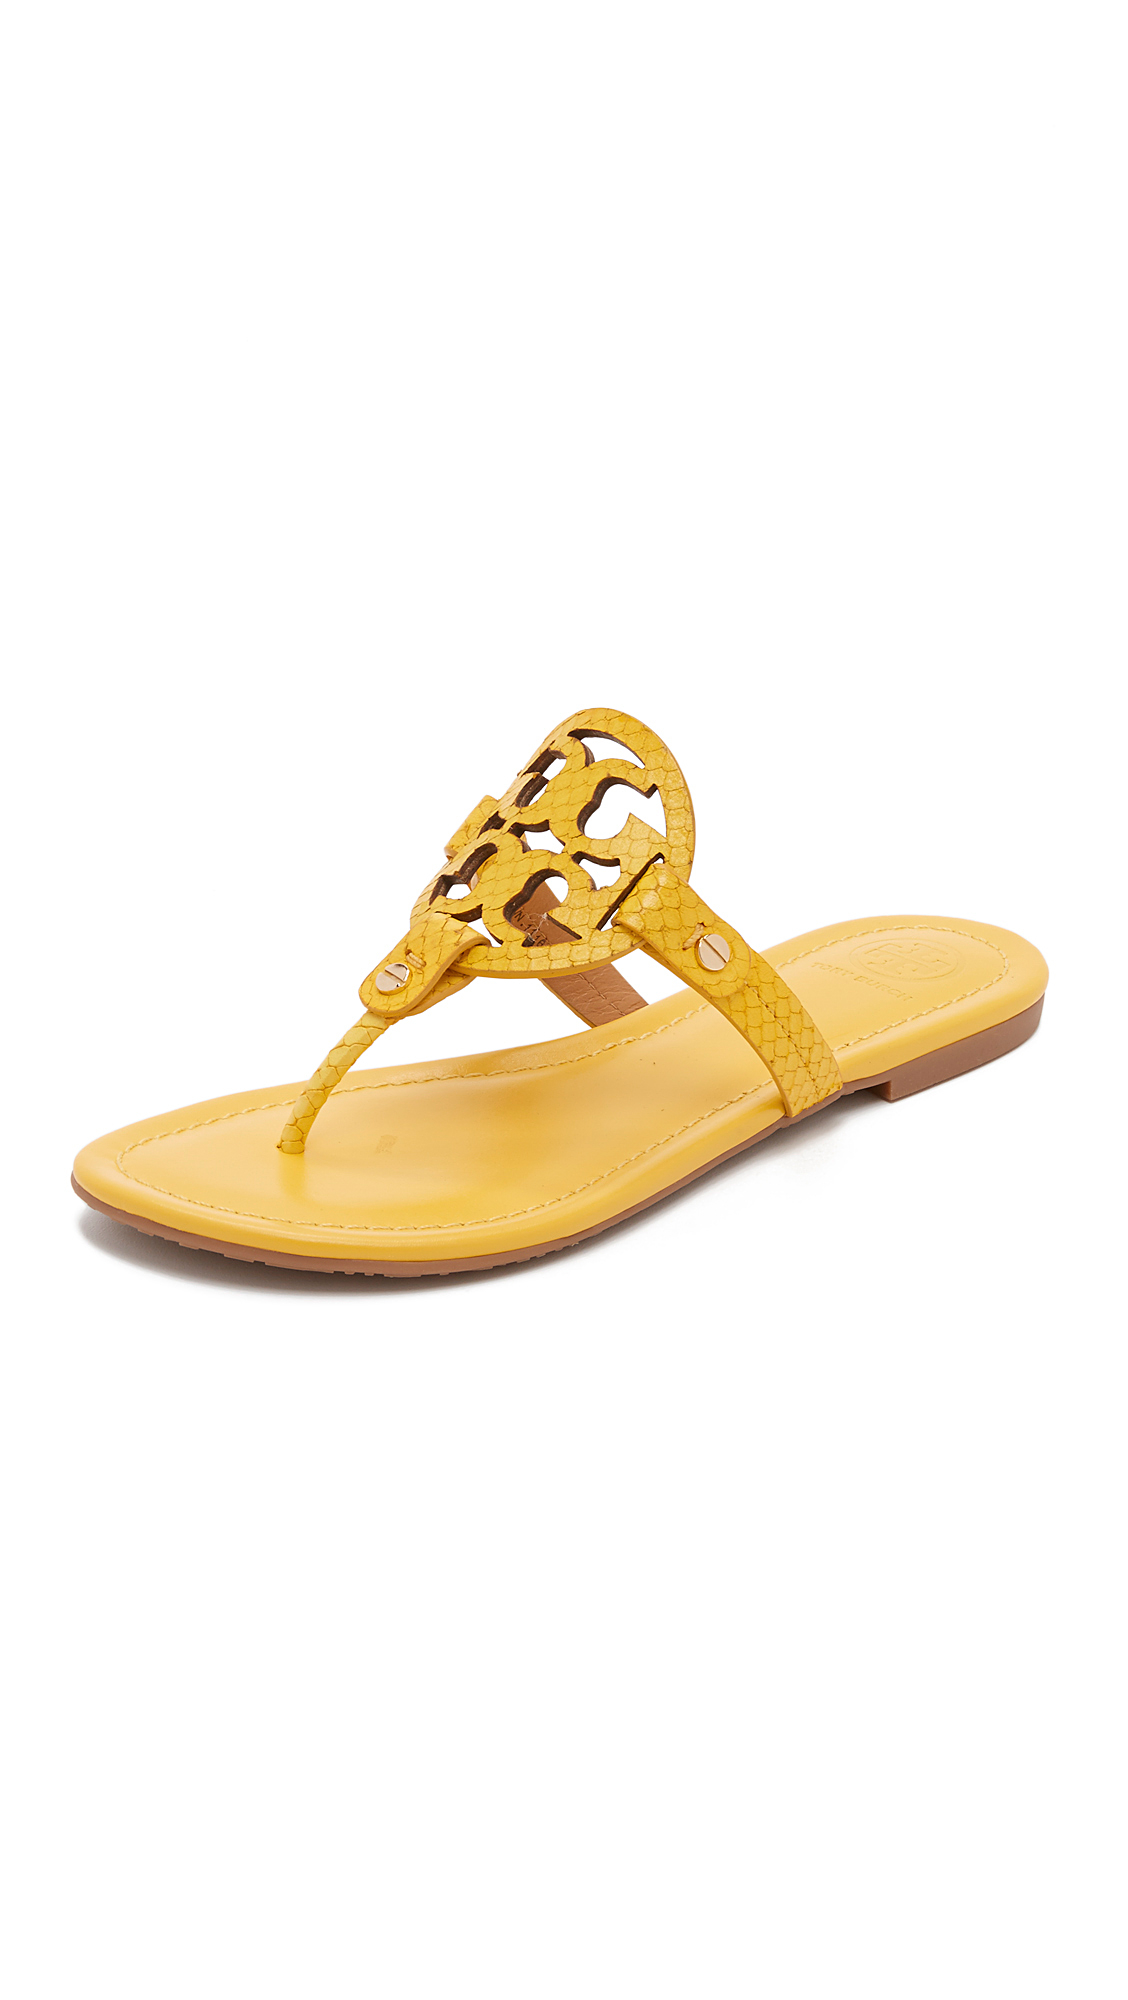 Tory Burch shoes, clothing, and accessories can now be bought in over stores all over the world. One of the most popular items that can be purchased in Tory Burch stores and on her website is her line of shoes.